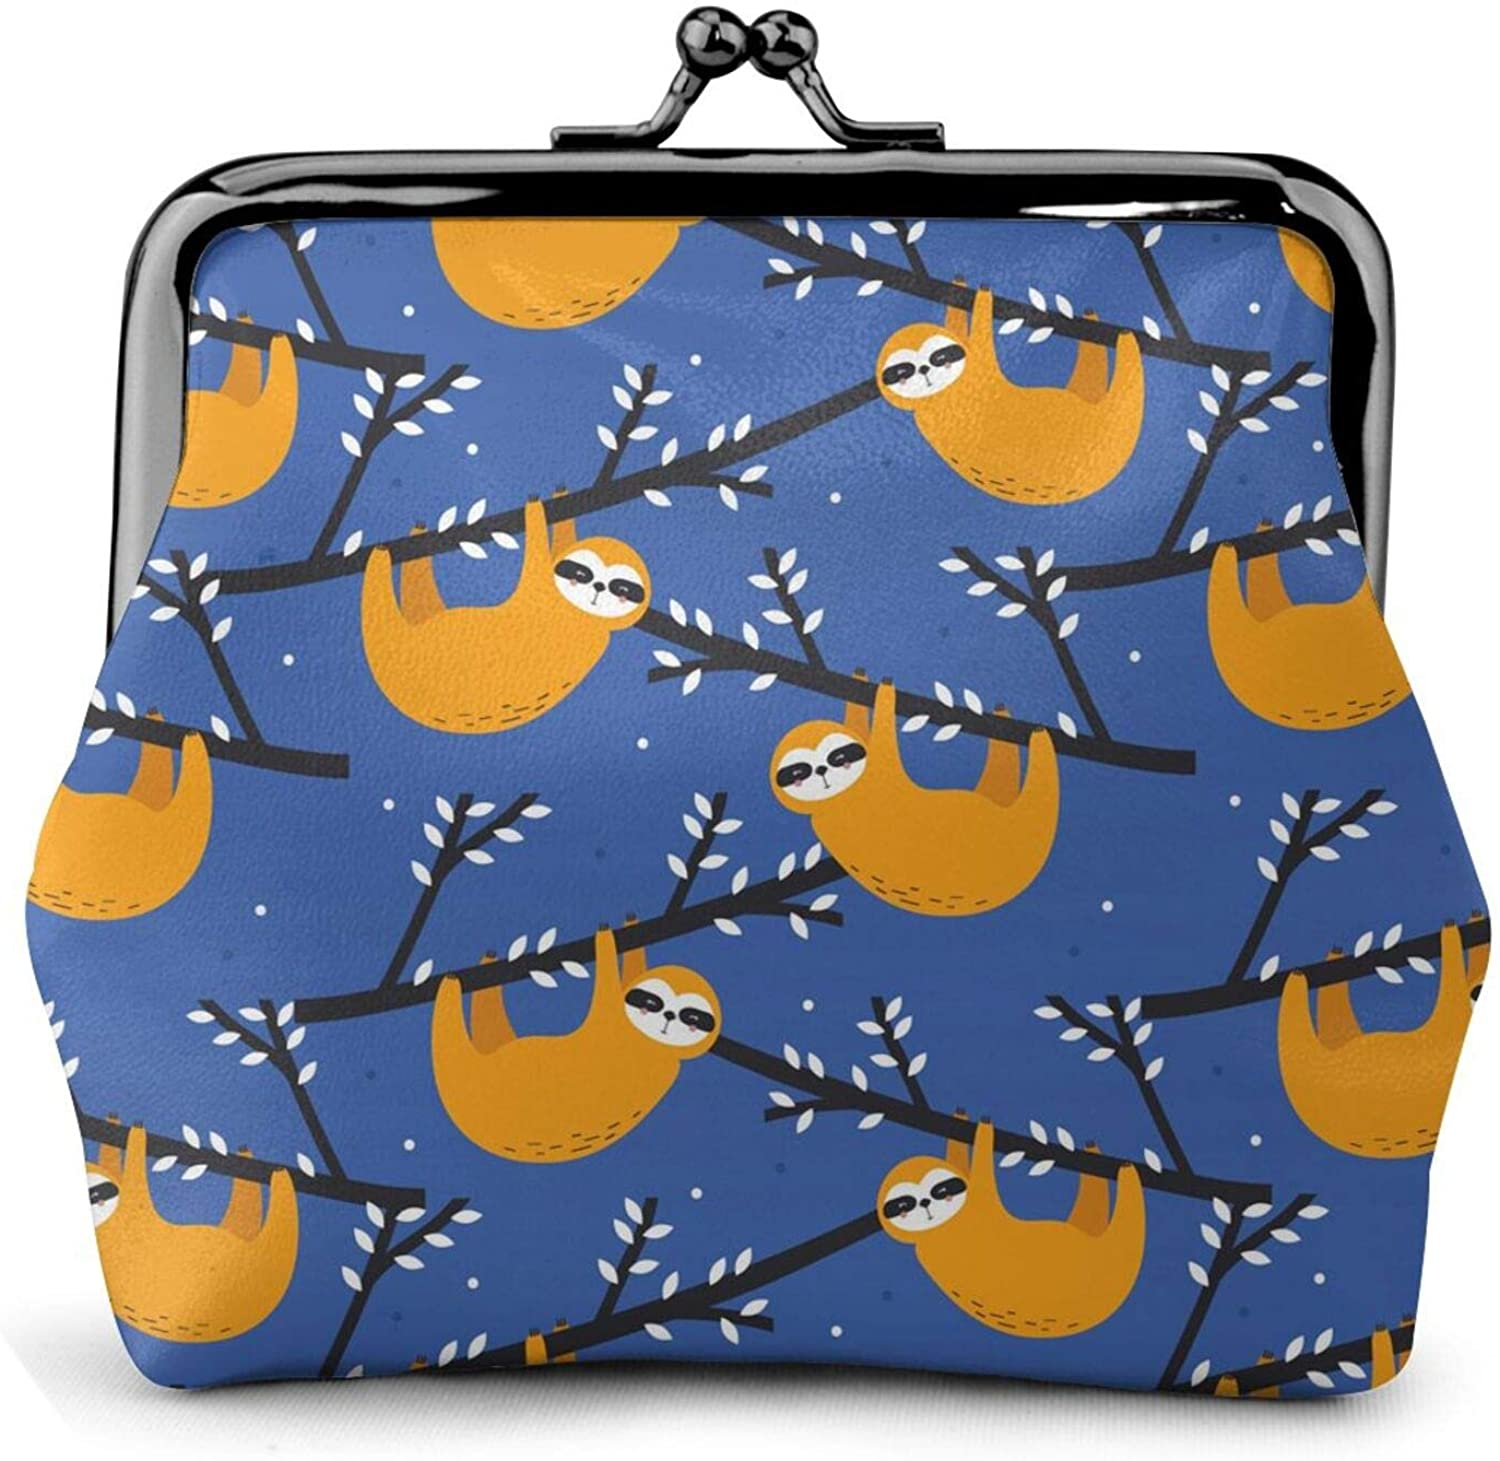 Cute Sloth That Climbs Trees Blue Girl Pouch Kiss-Lock Change Purse Wallets Buckle Leather Coin Purses Bag Key Woman Printed Vintage